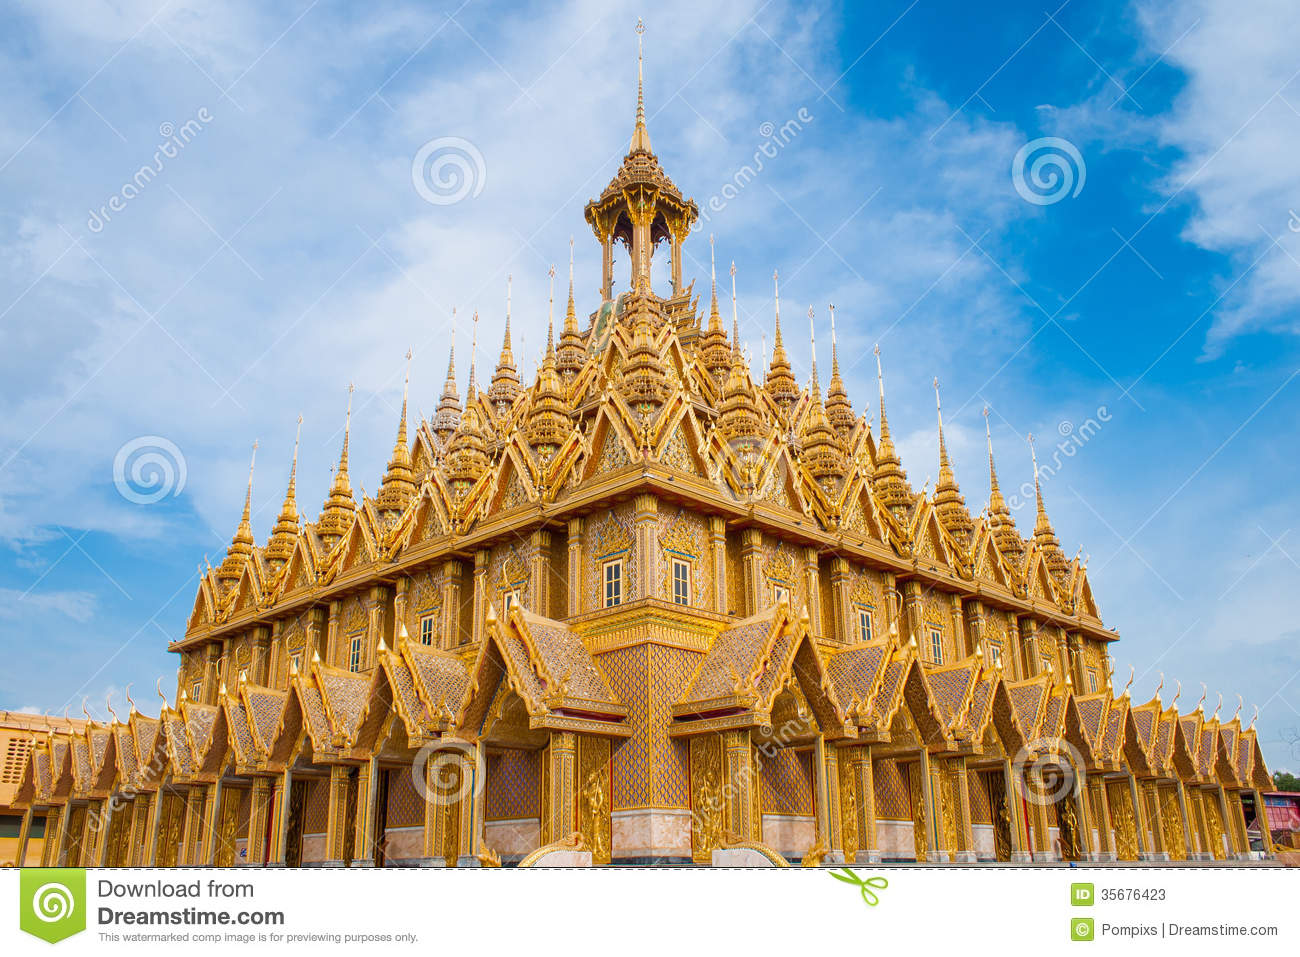 Thailand Temple - Wat ta-sung in Chainat Province, northern Thailand.